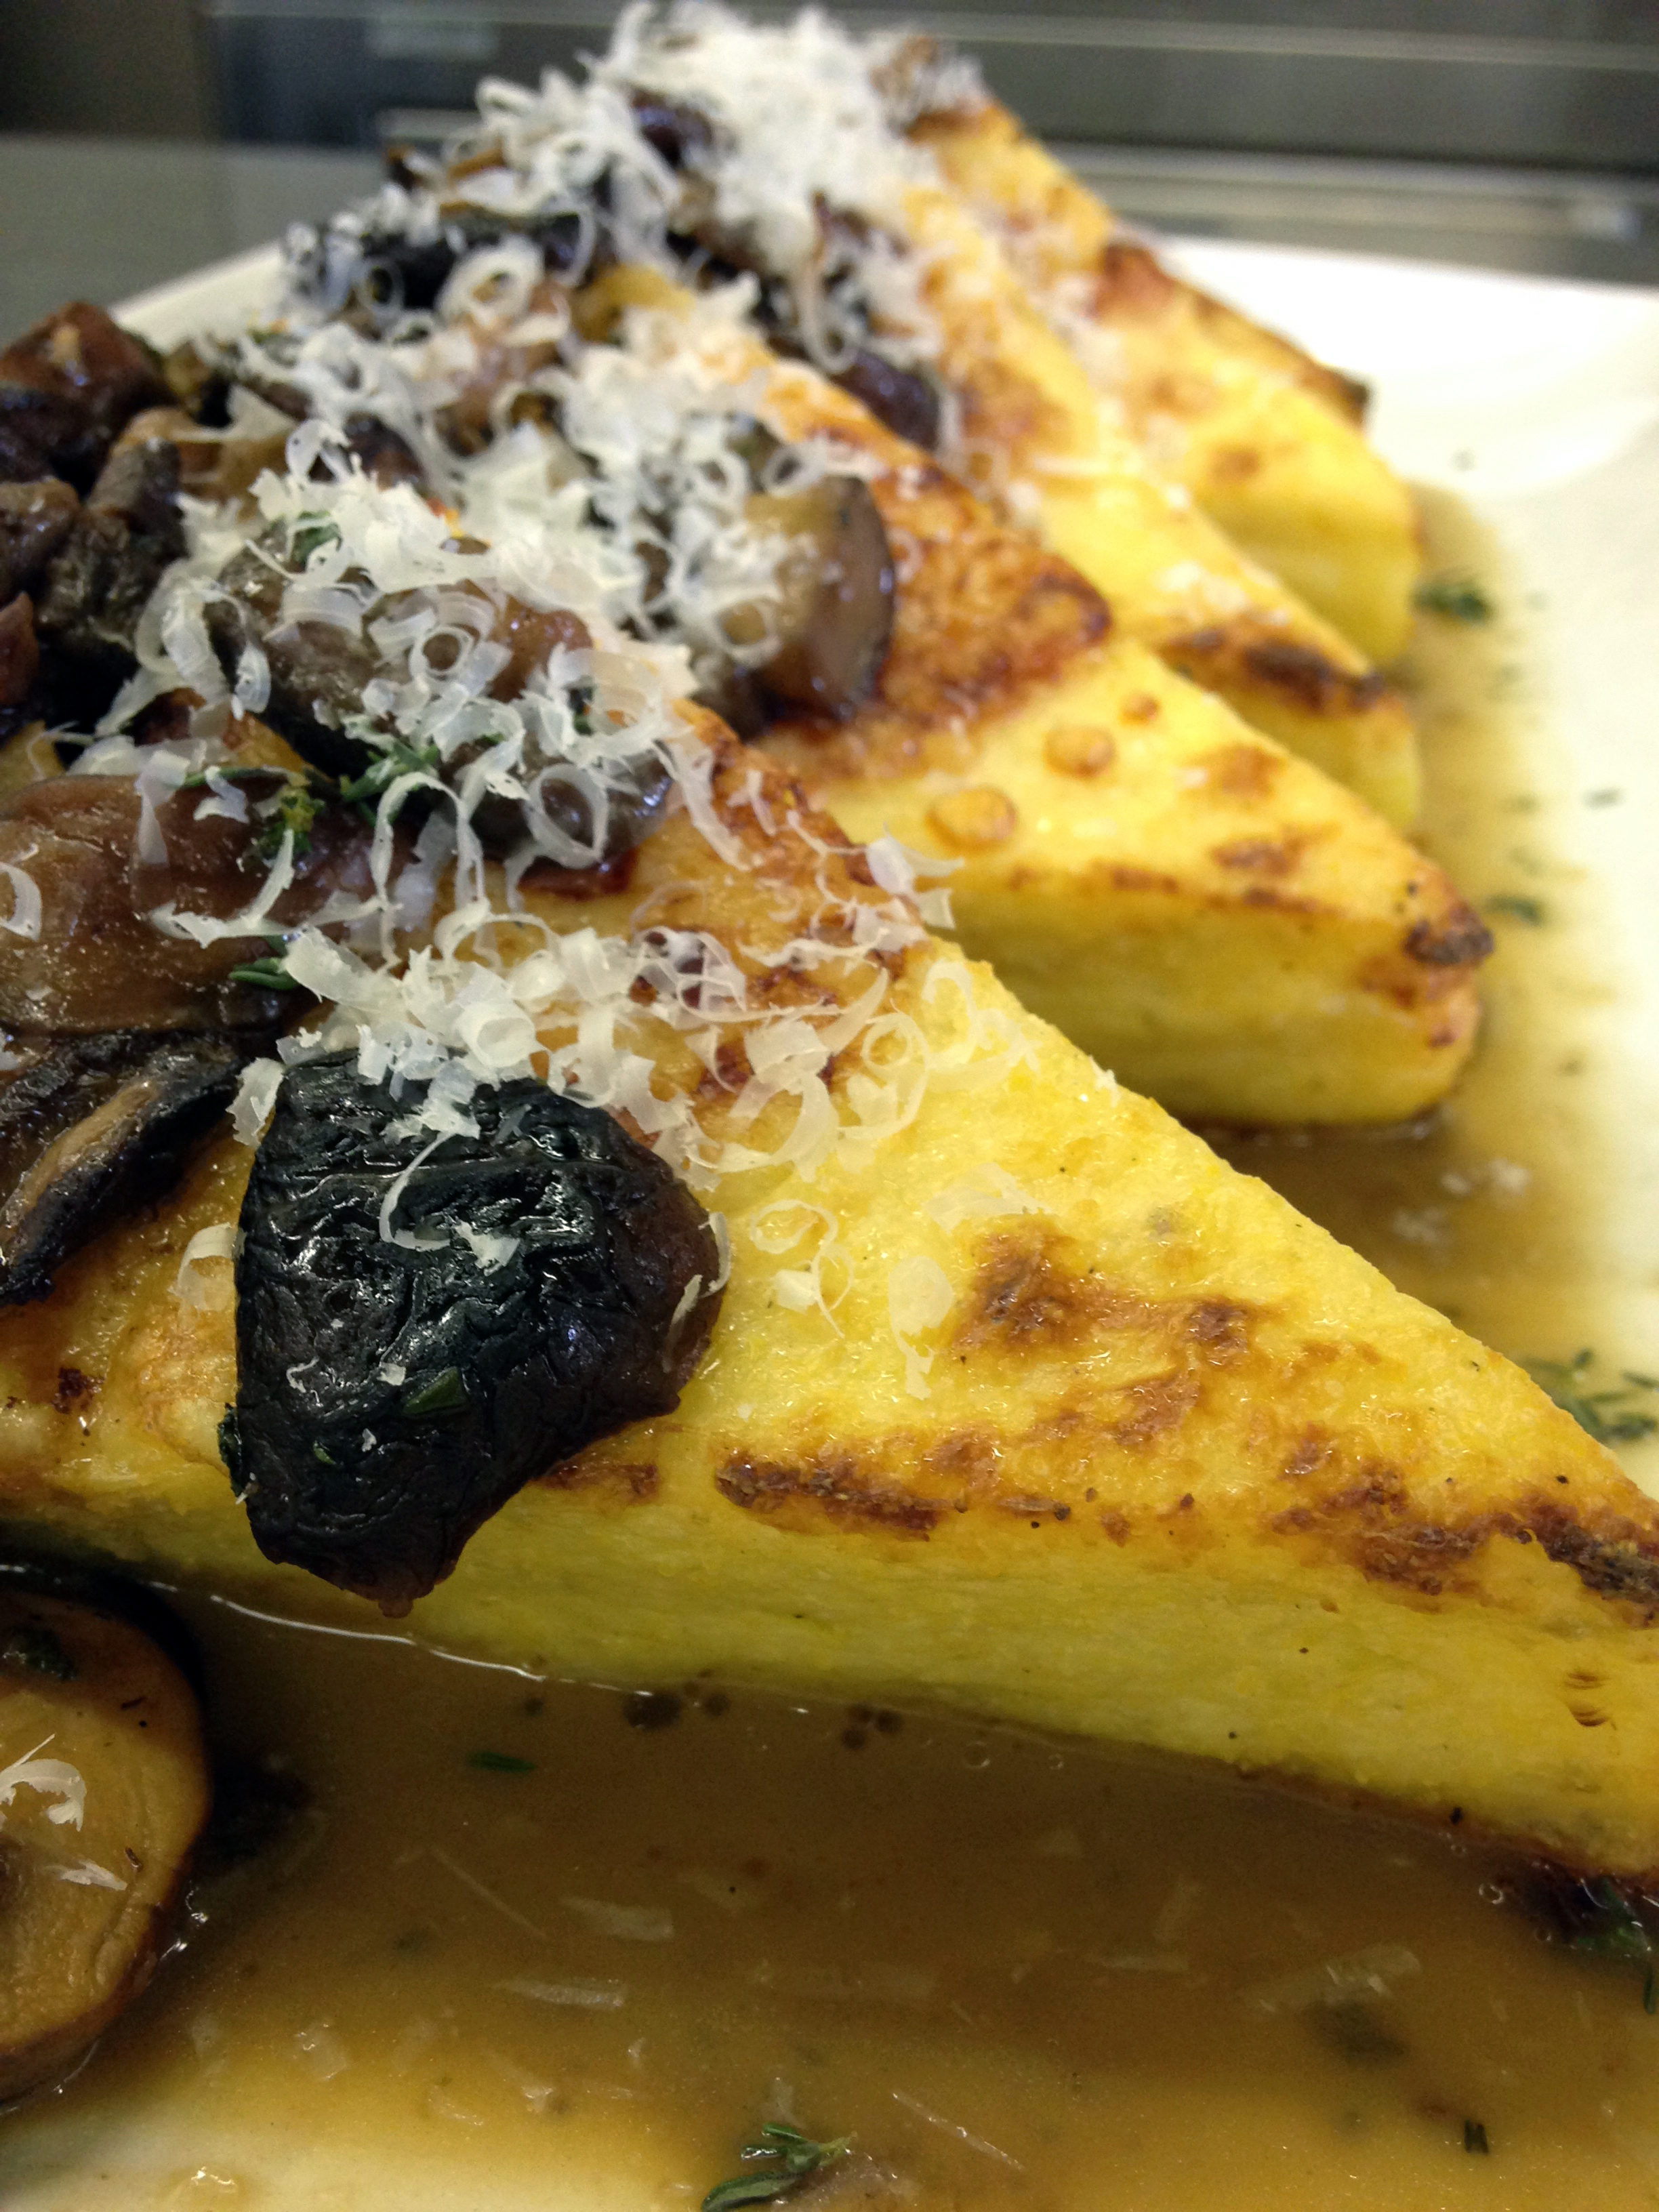 Chef Chris took our cooled polenta, cut it into triangles, topped with butter and Parmesan and baked it until golden. Then he added a savory mushroom sauce.